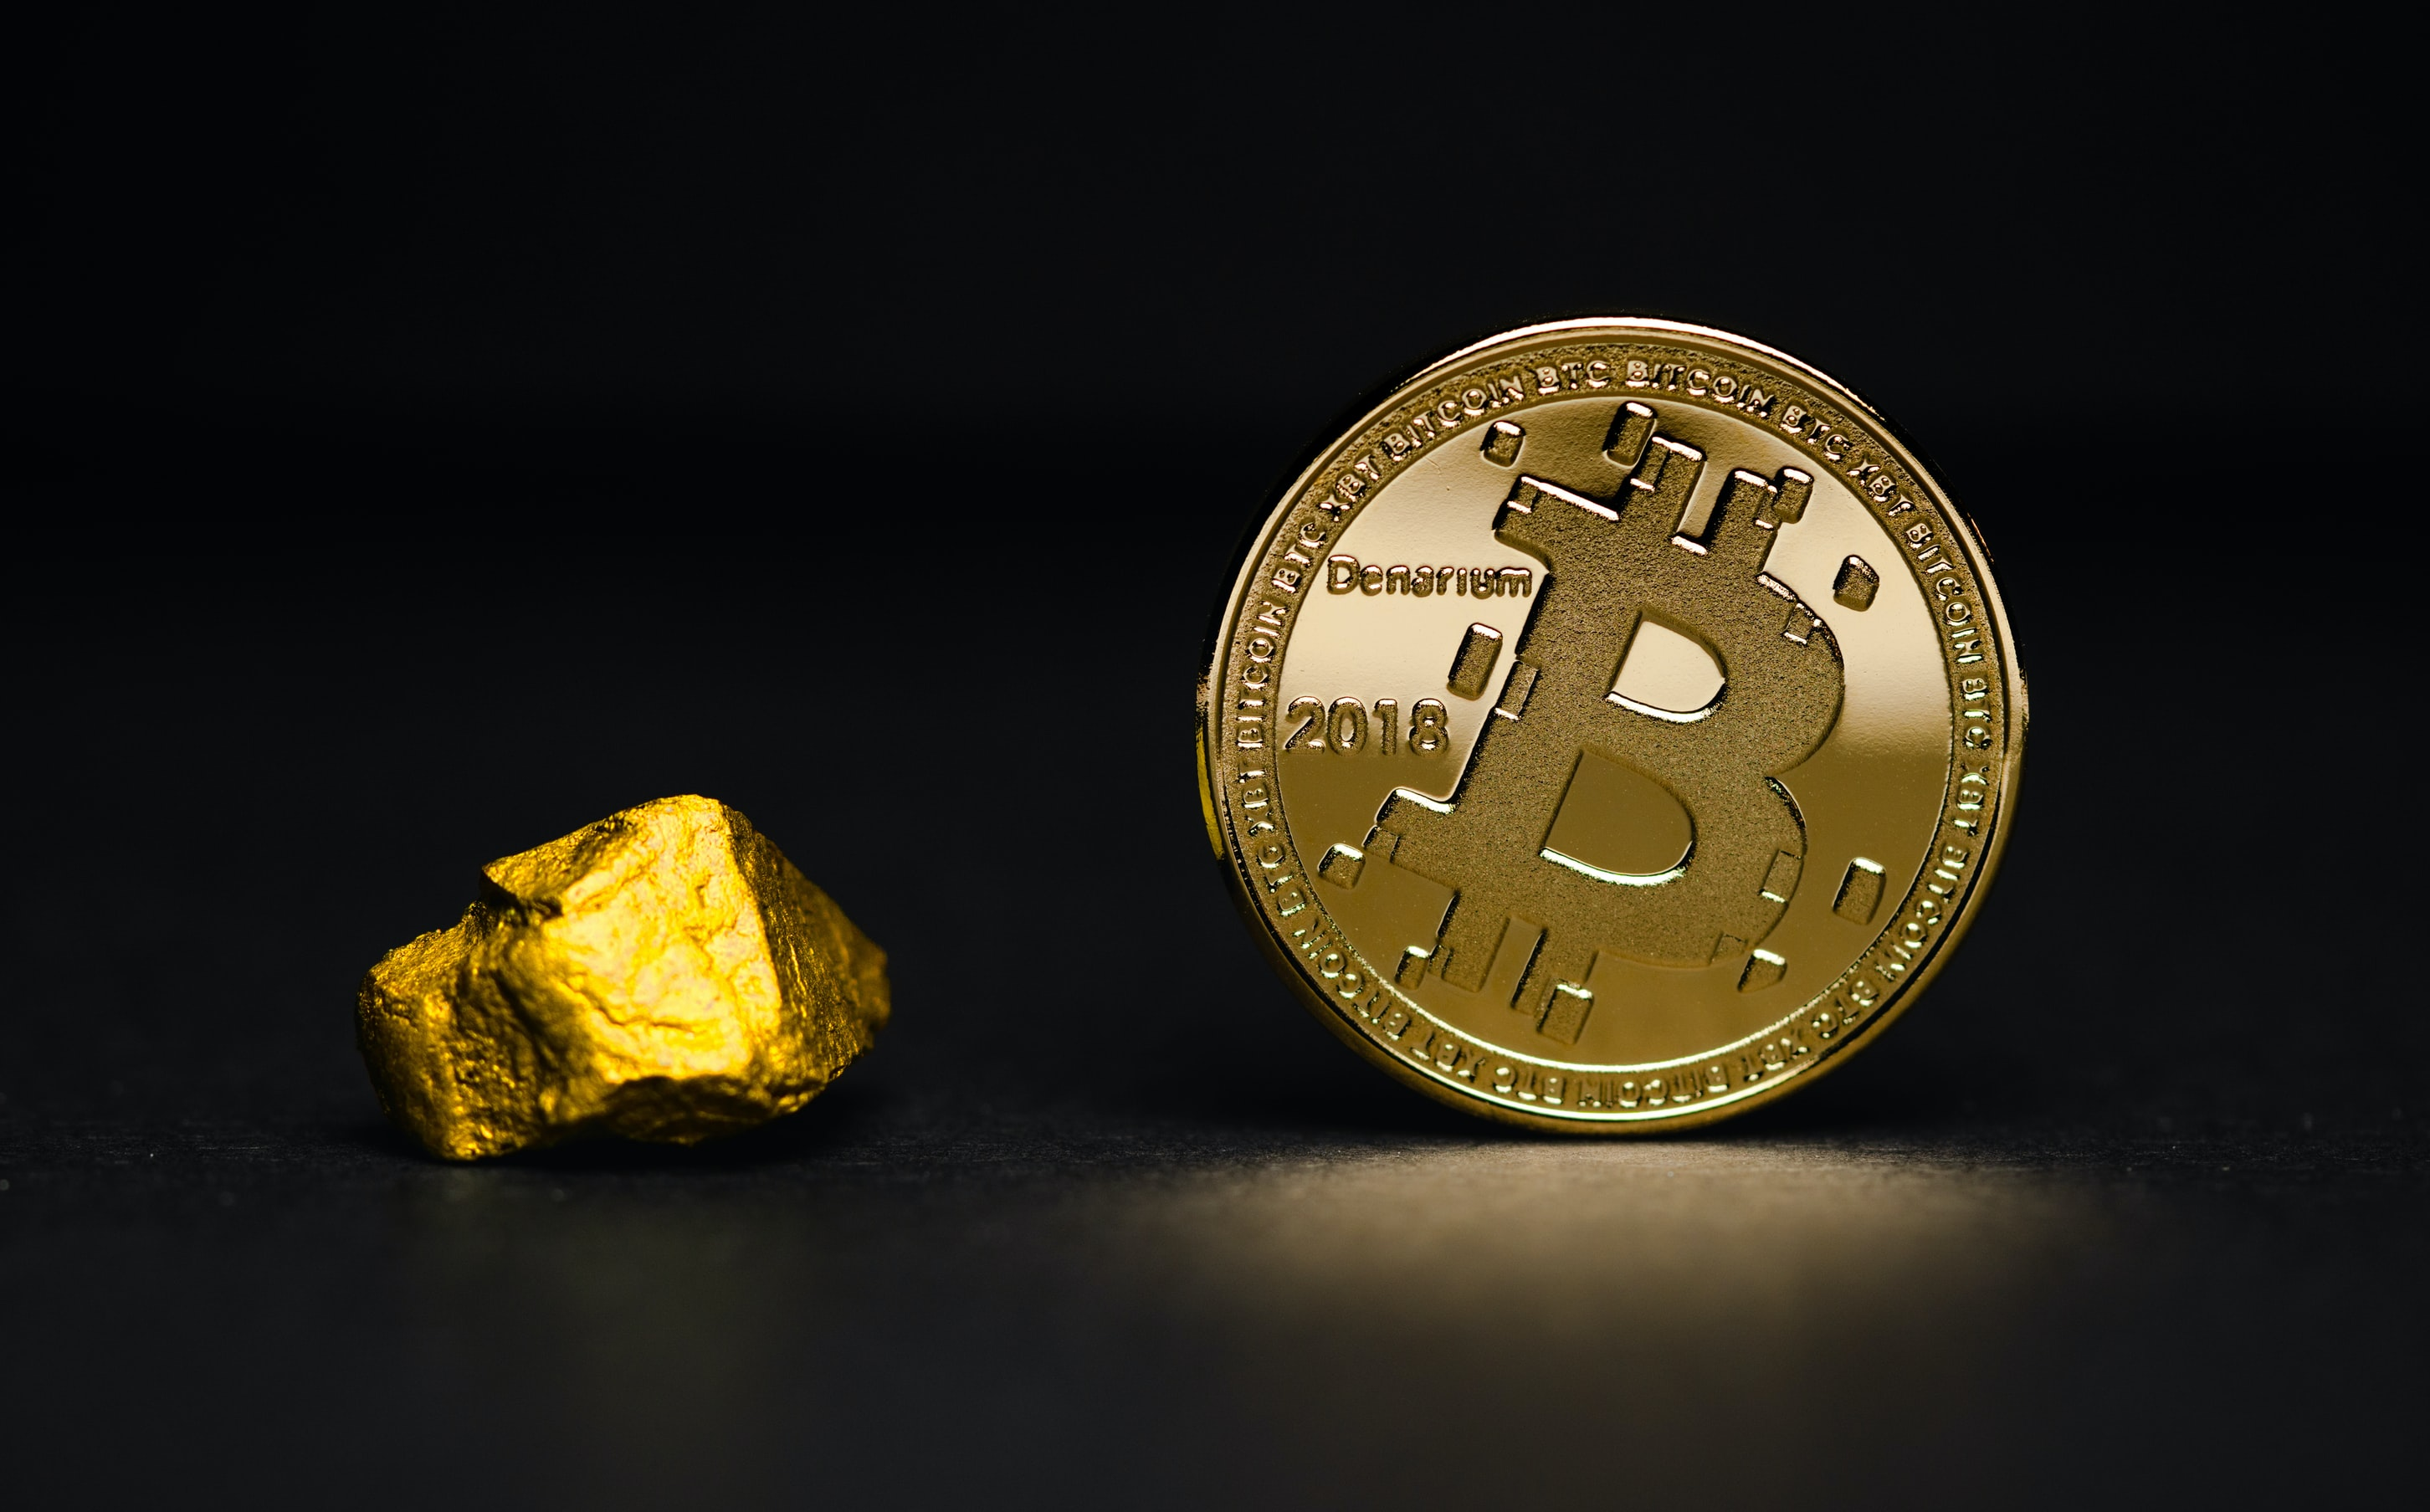 What has convinced the individuals to choose bitcoins in the significant proportion for their crypto portfolio?